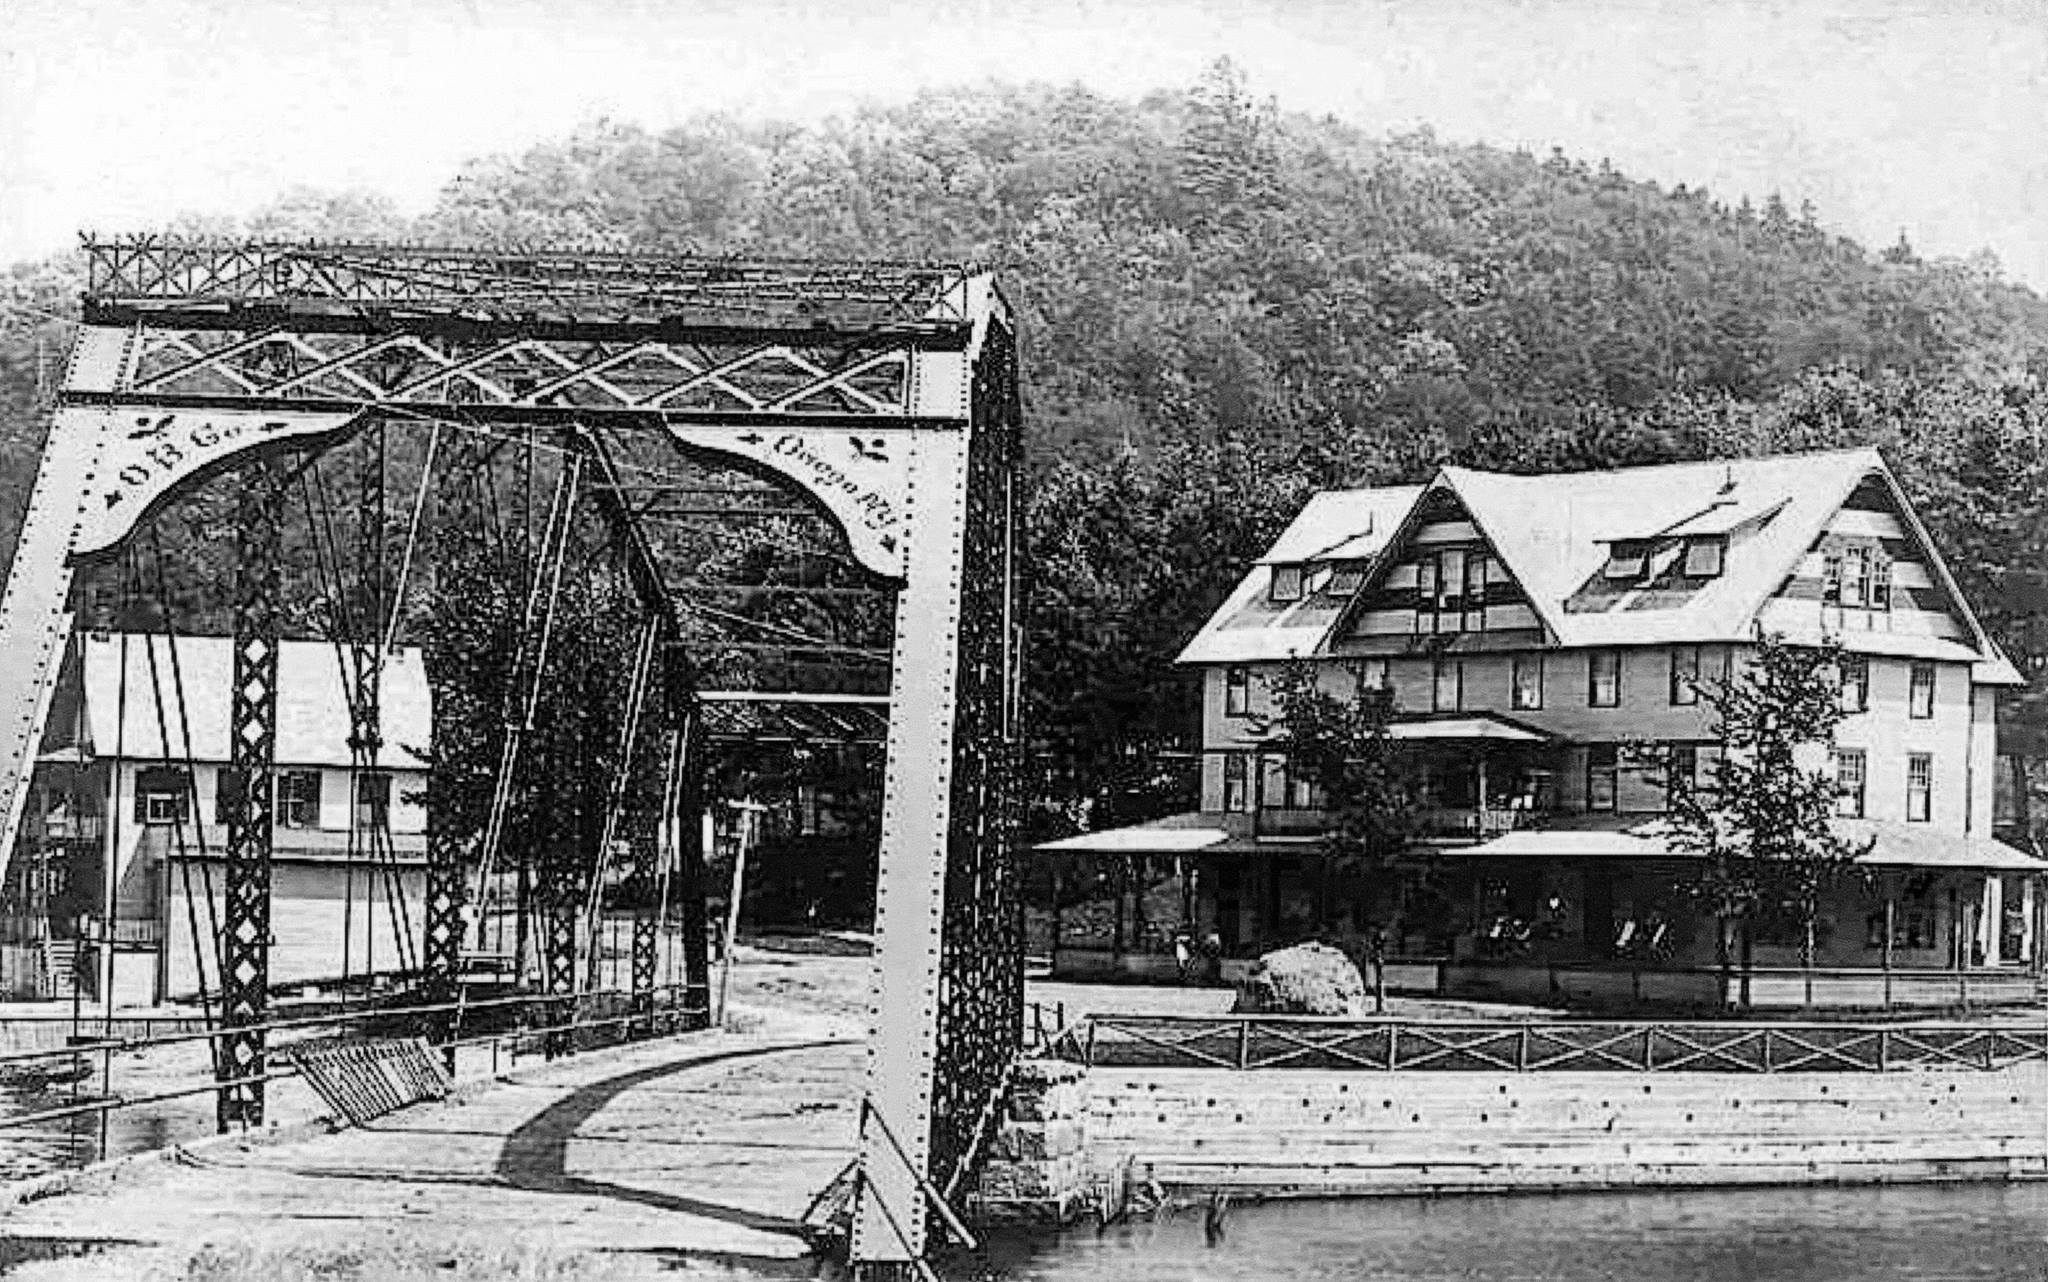 Historic view of the ADK Hotel